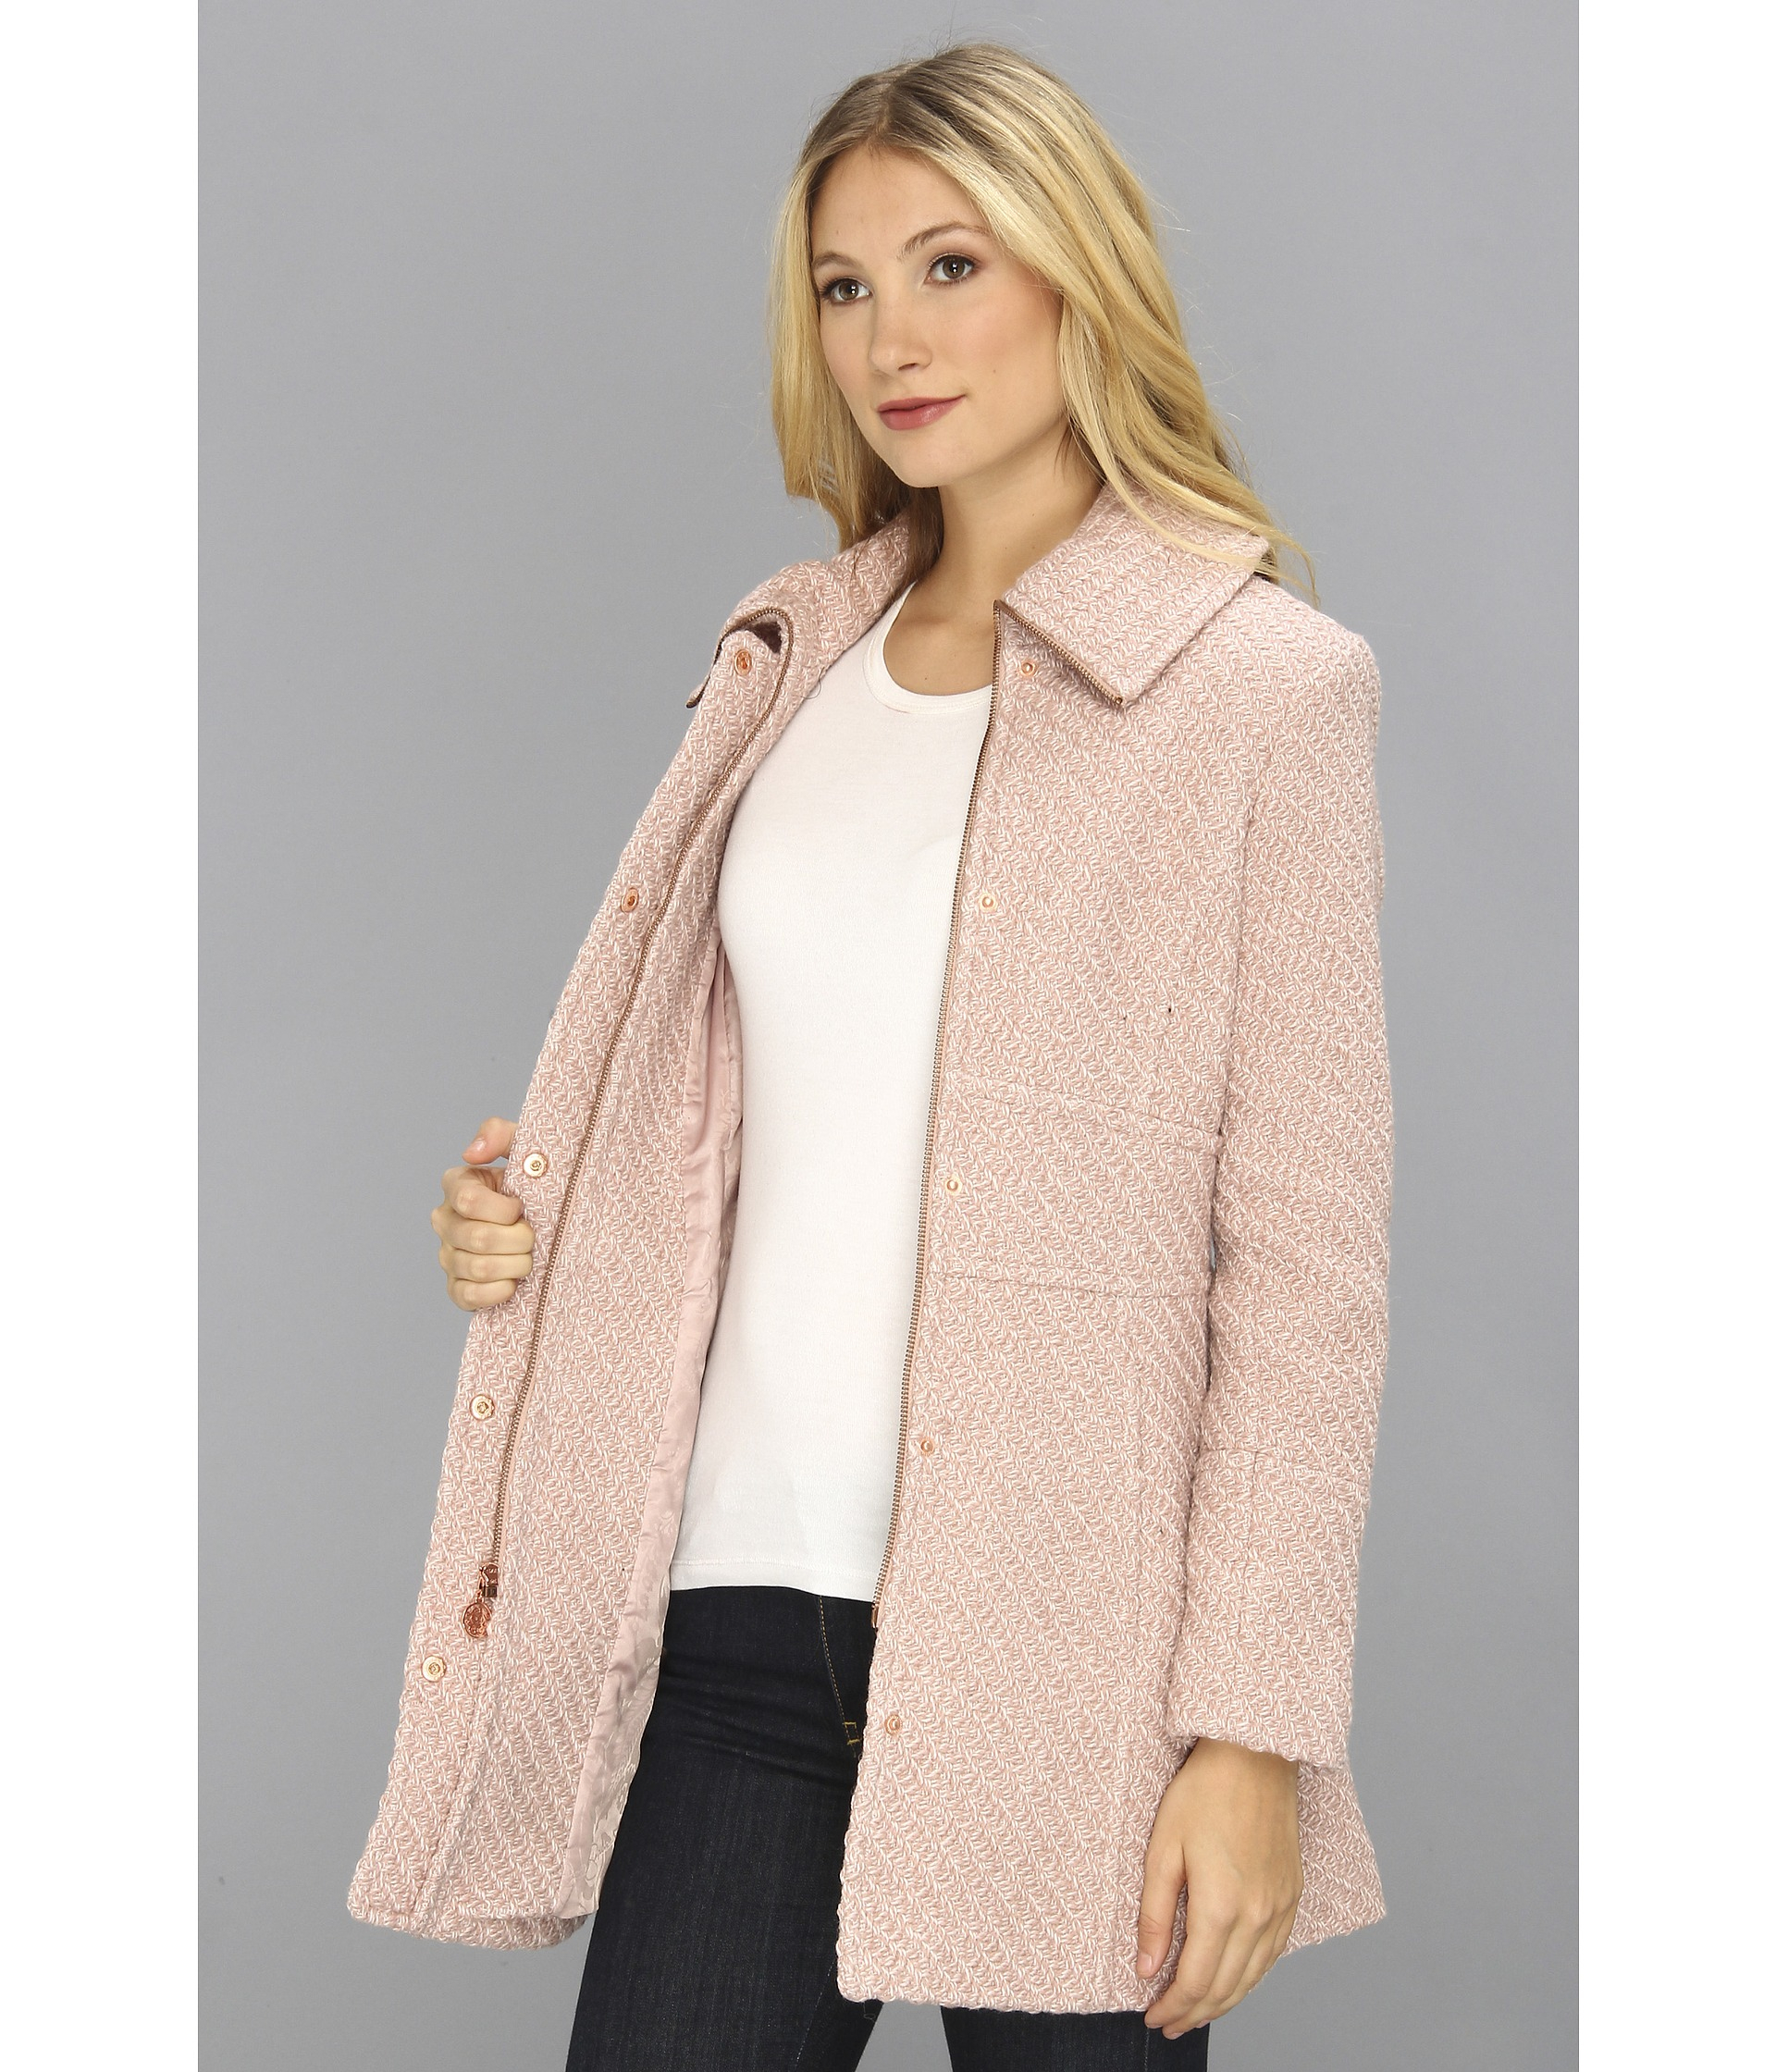 Jessica simpson Textured Wool Coat in Pink | Lyst